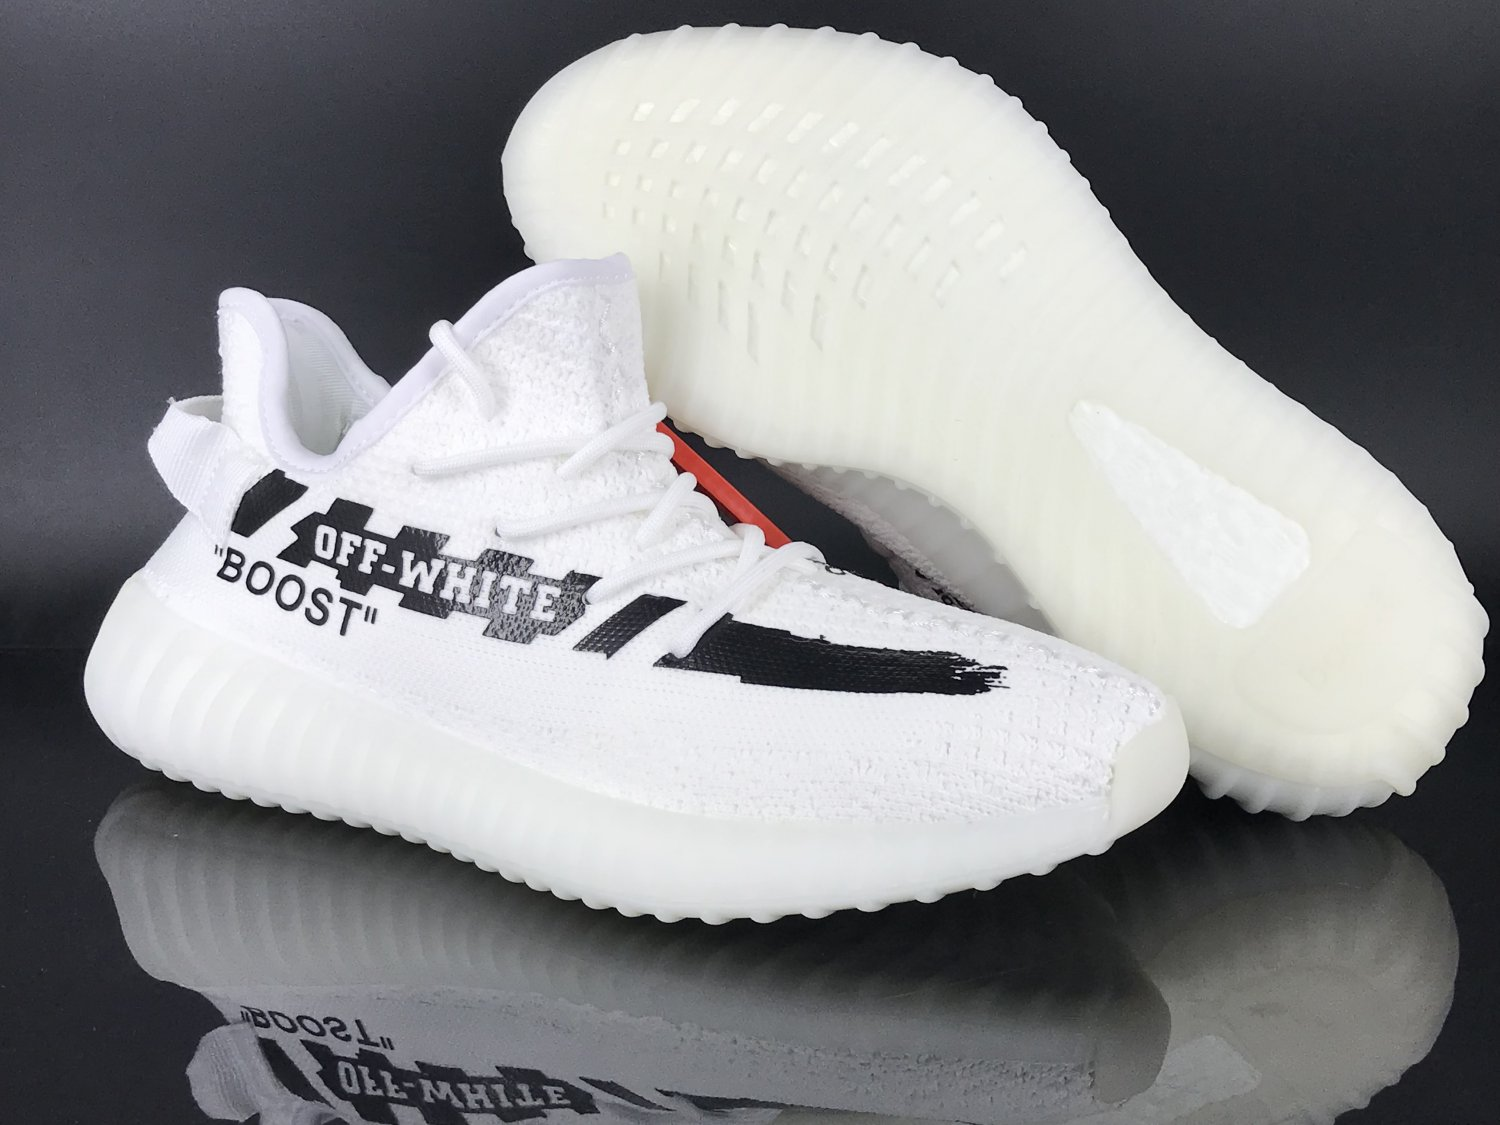 half off 79c97 0c5c7 Men's Off-White x Yeezy Boost 350 V2 White and Black